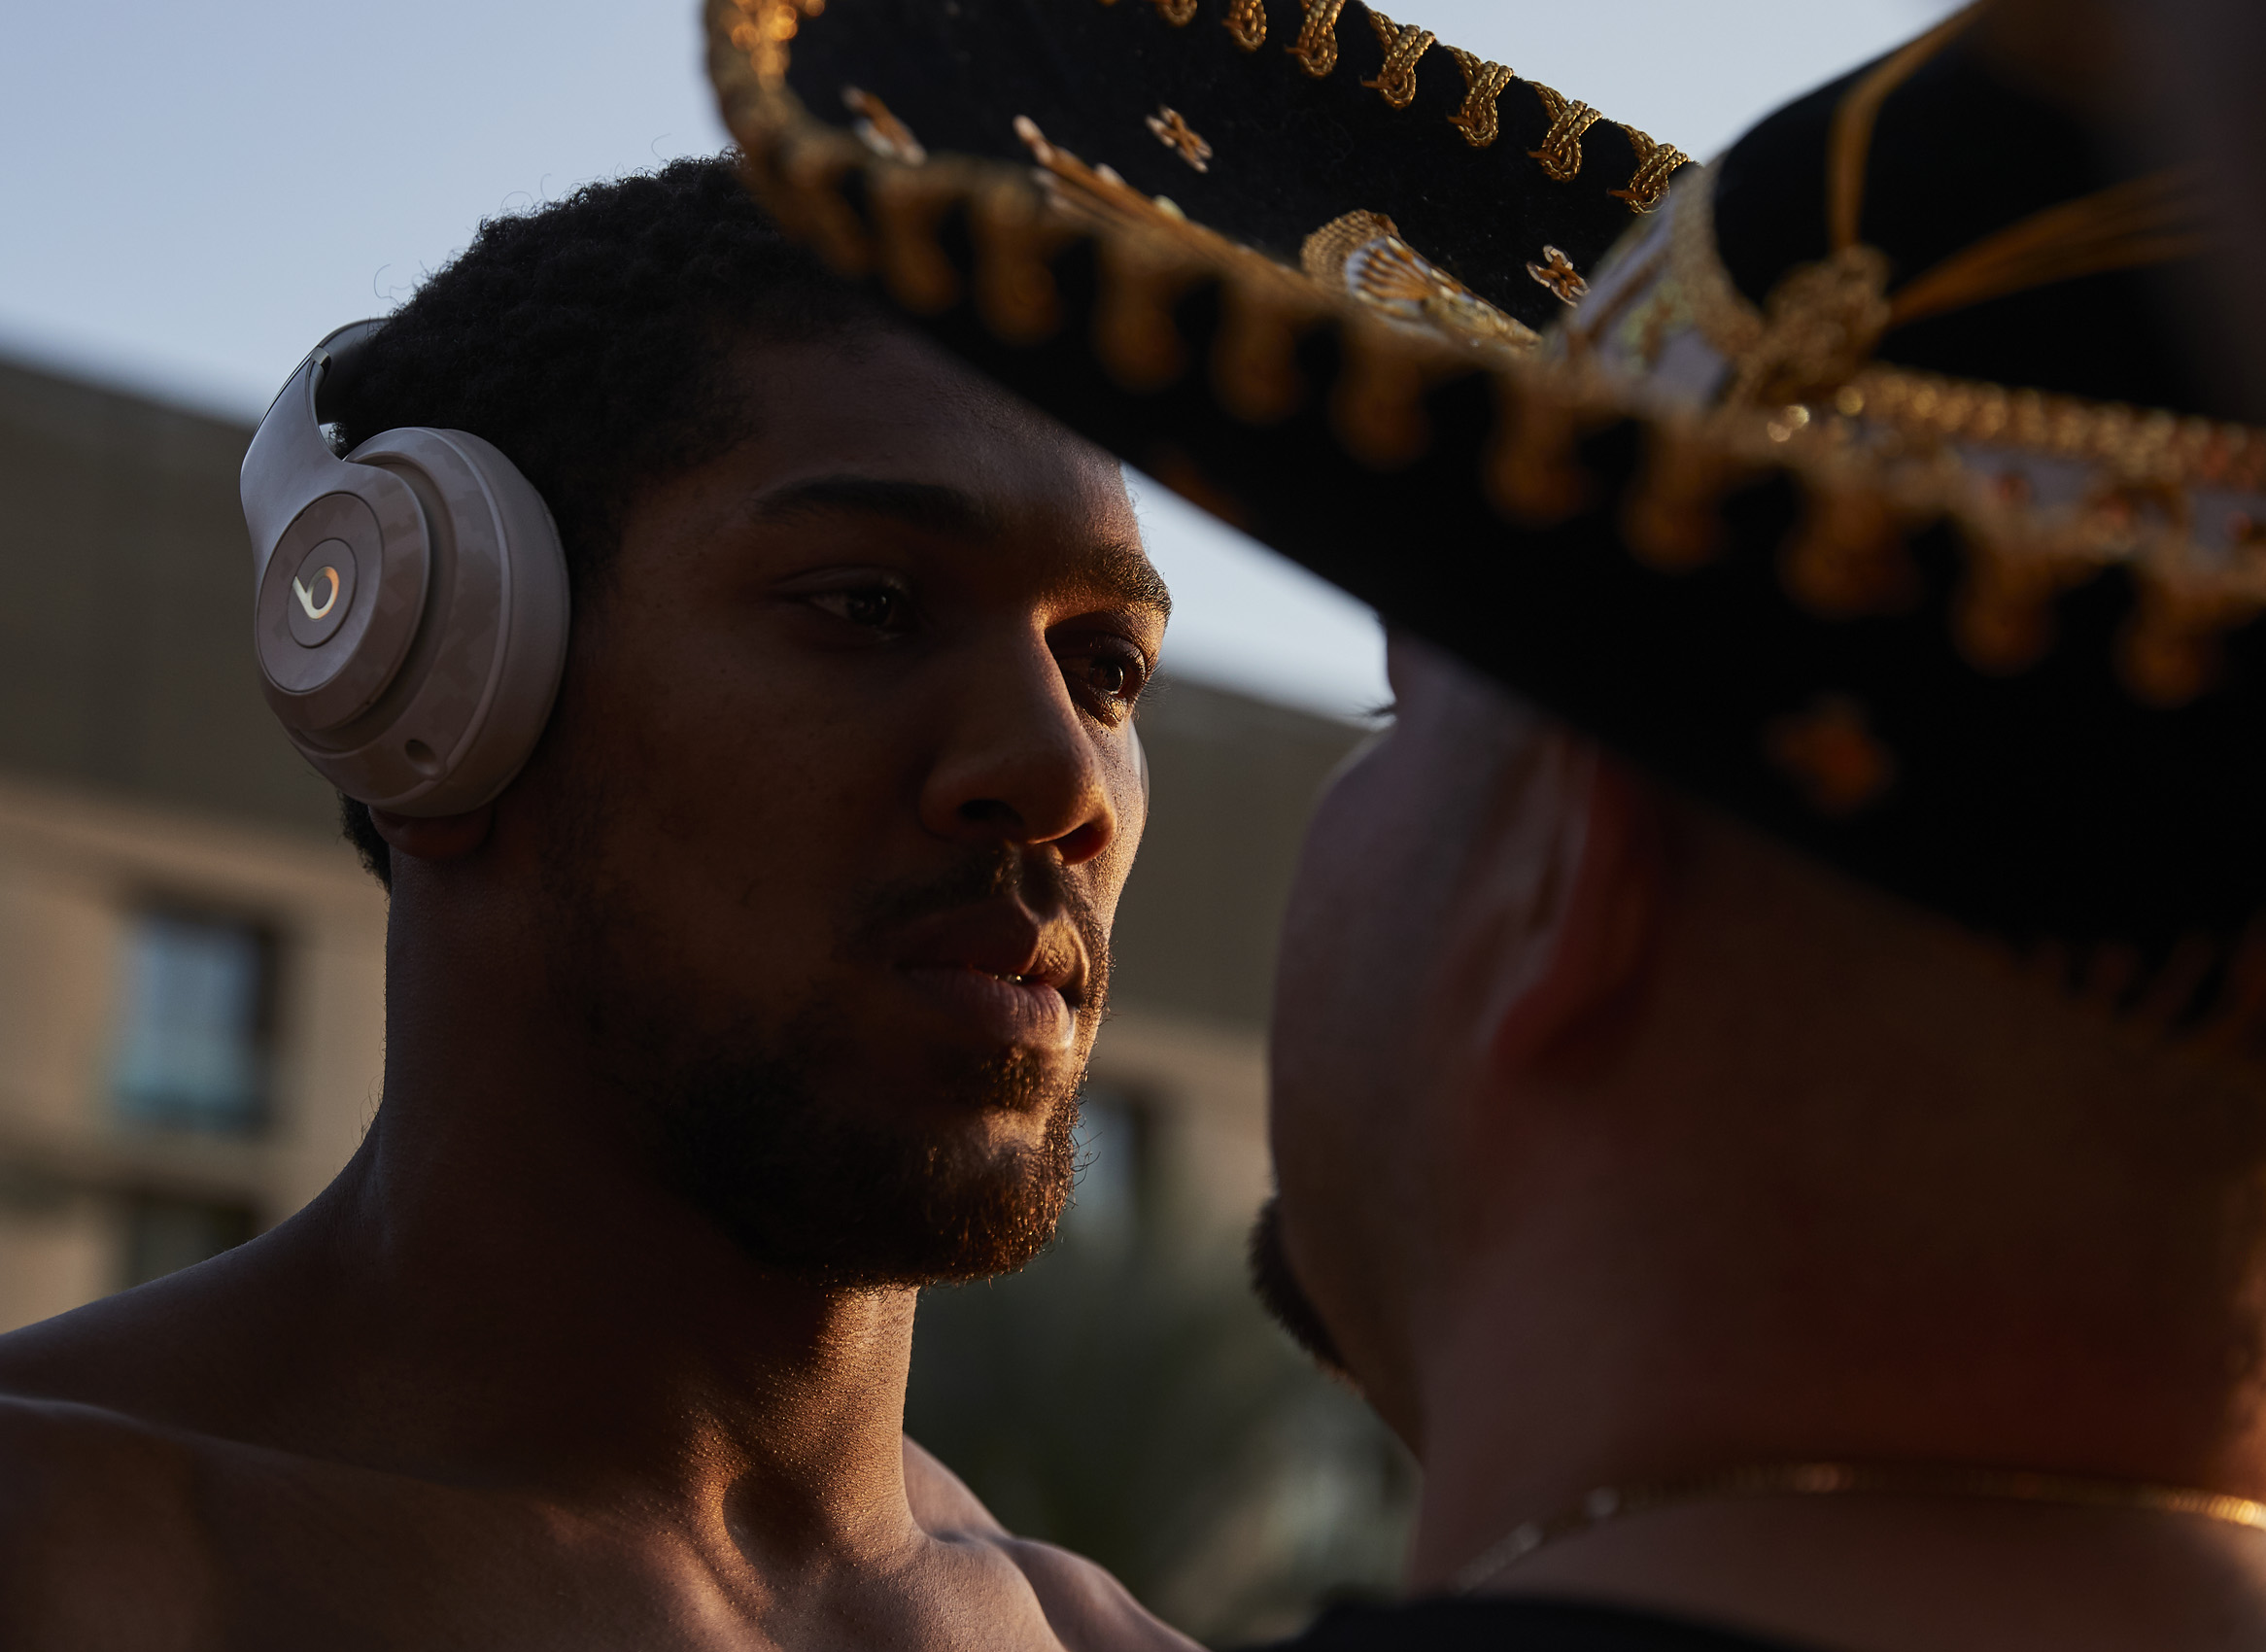 Anthony Joshua Andy Ruiz Jr Weigh In Stare Into Eyes Saudi Arabia Rematch © Mark Robinson Photographer Matchrrom Boxing